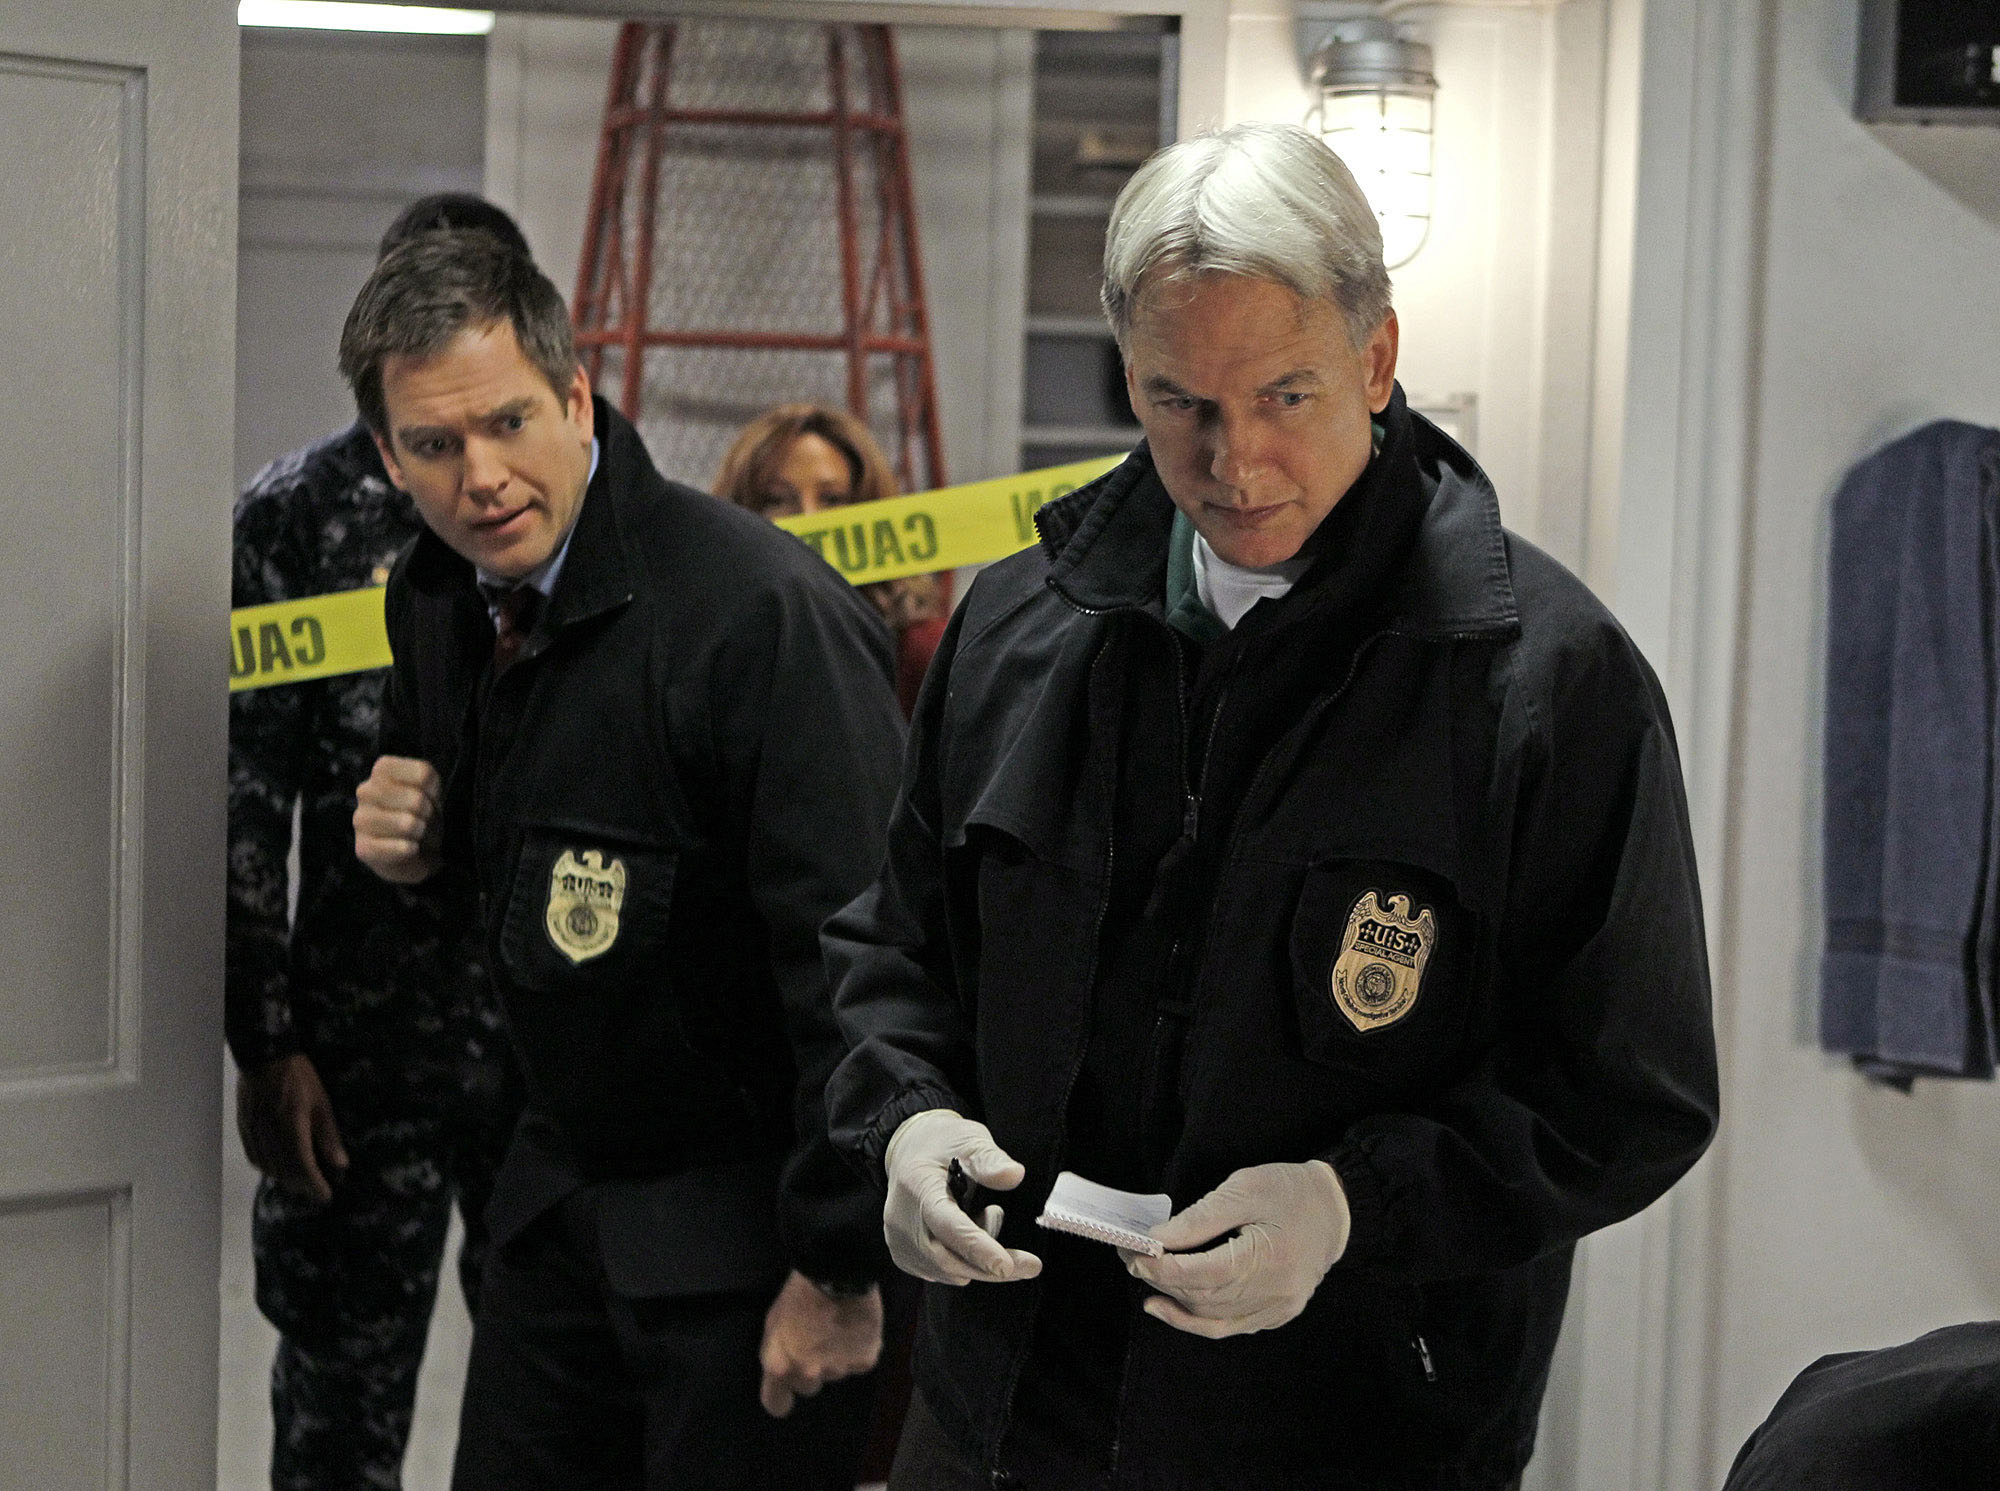 Image #: 13346446    'A Man Walks Into A Bar...' -- The NCIS team undergoes mandatory psych evaluations while investigating t